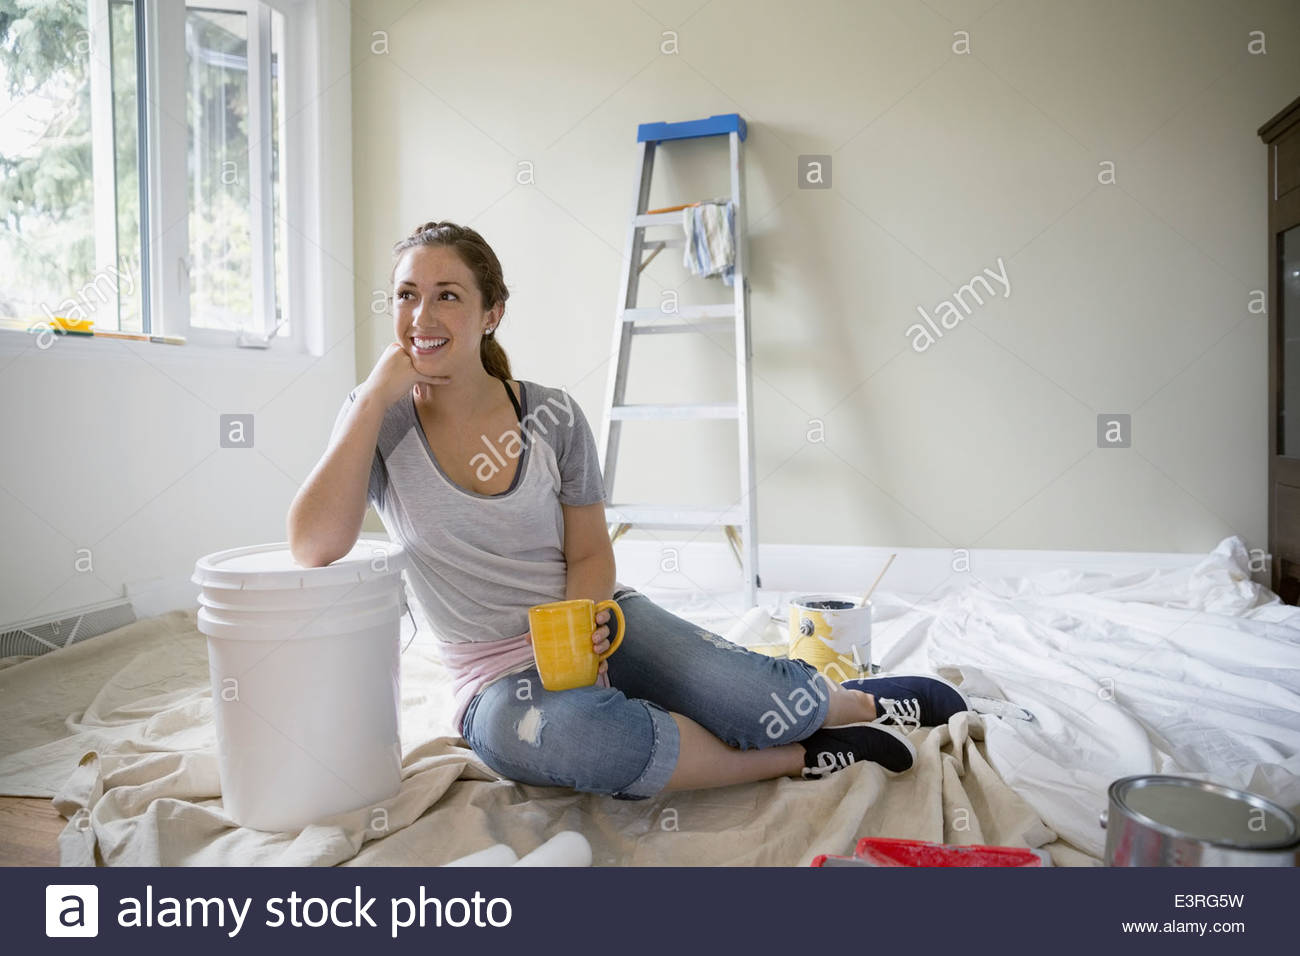 Smiling woman drinking coffee sur toile peinture Photo Stock